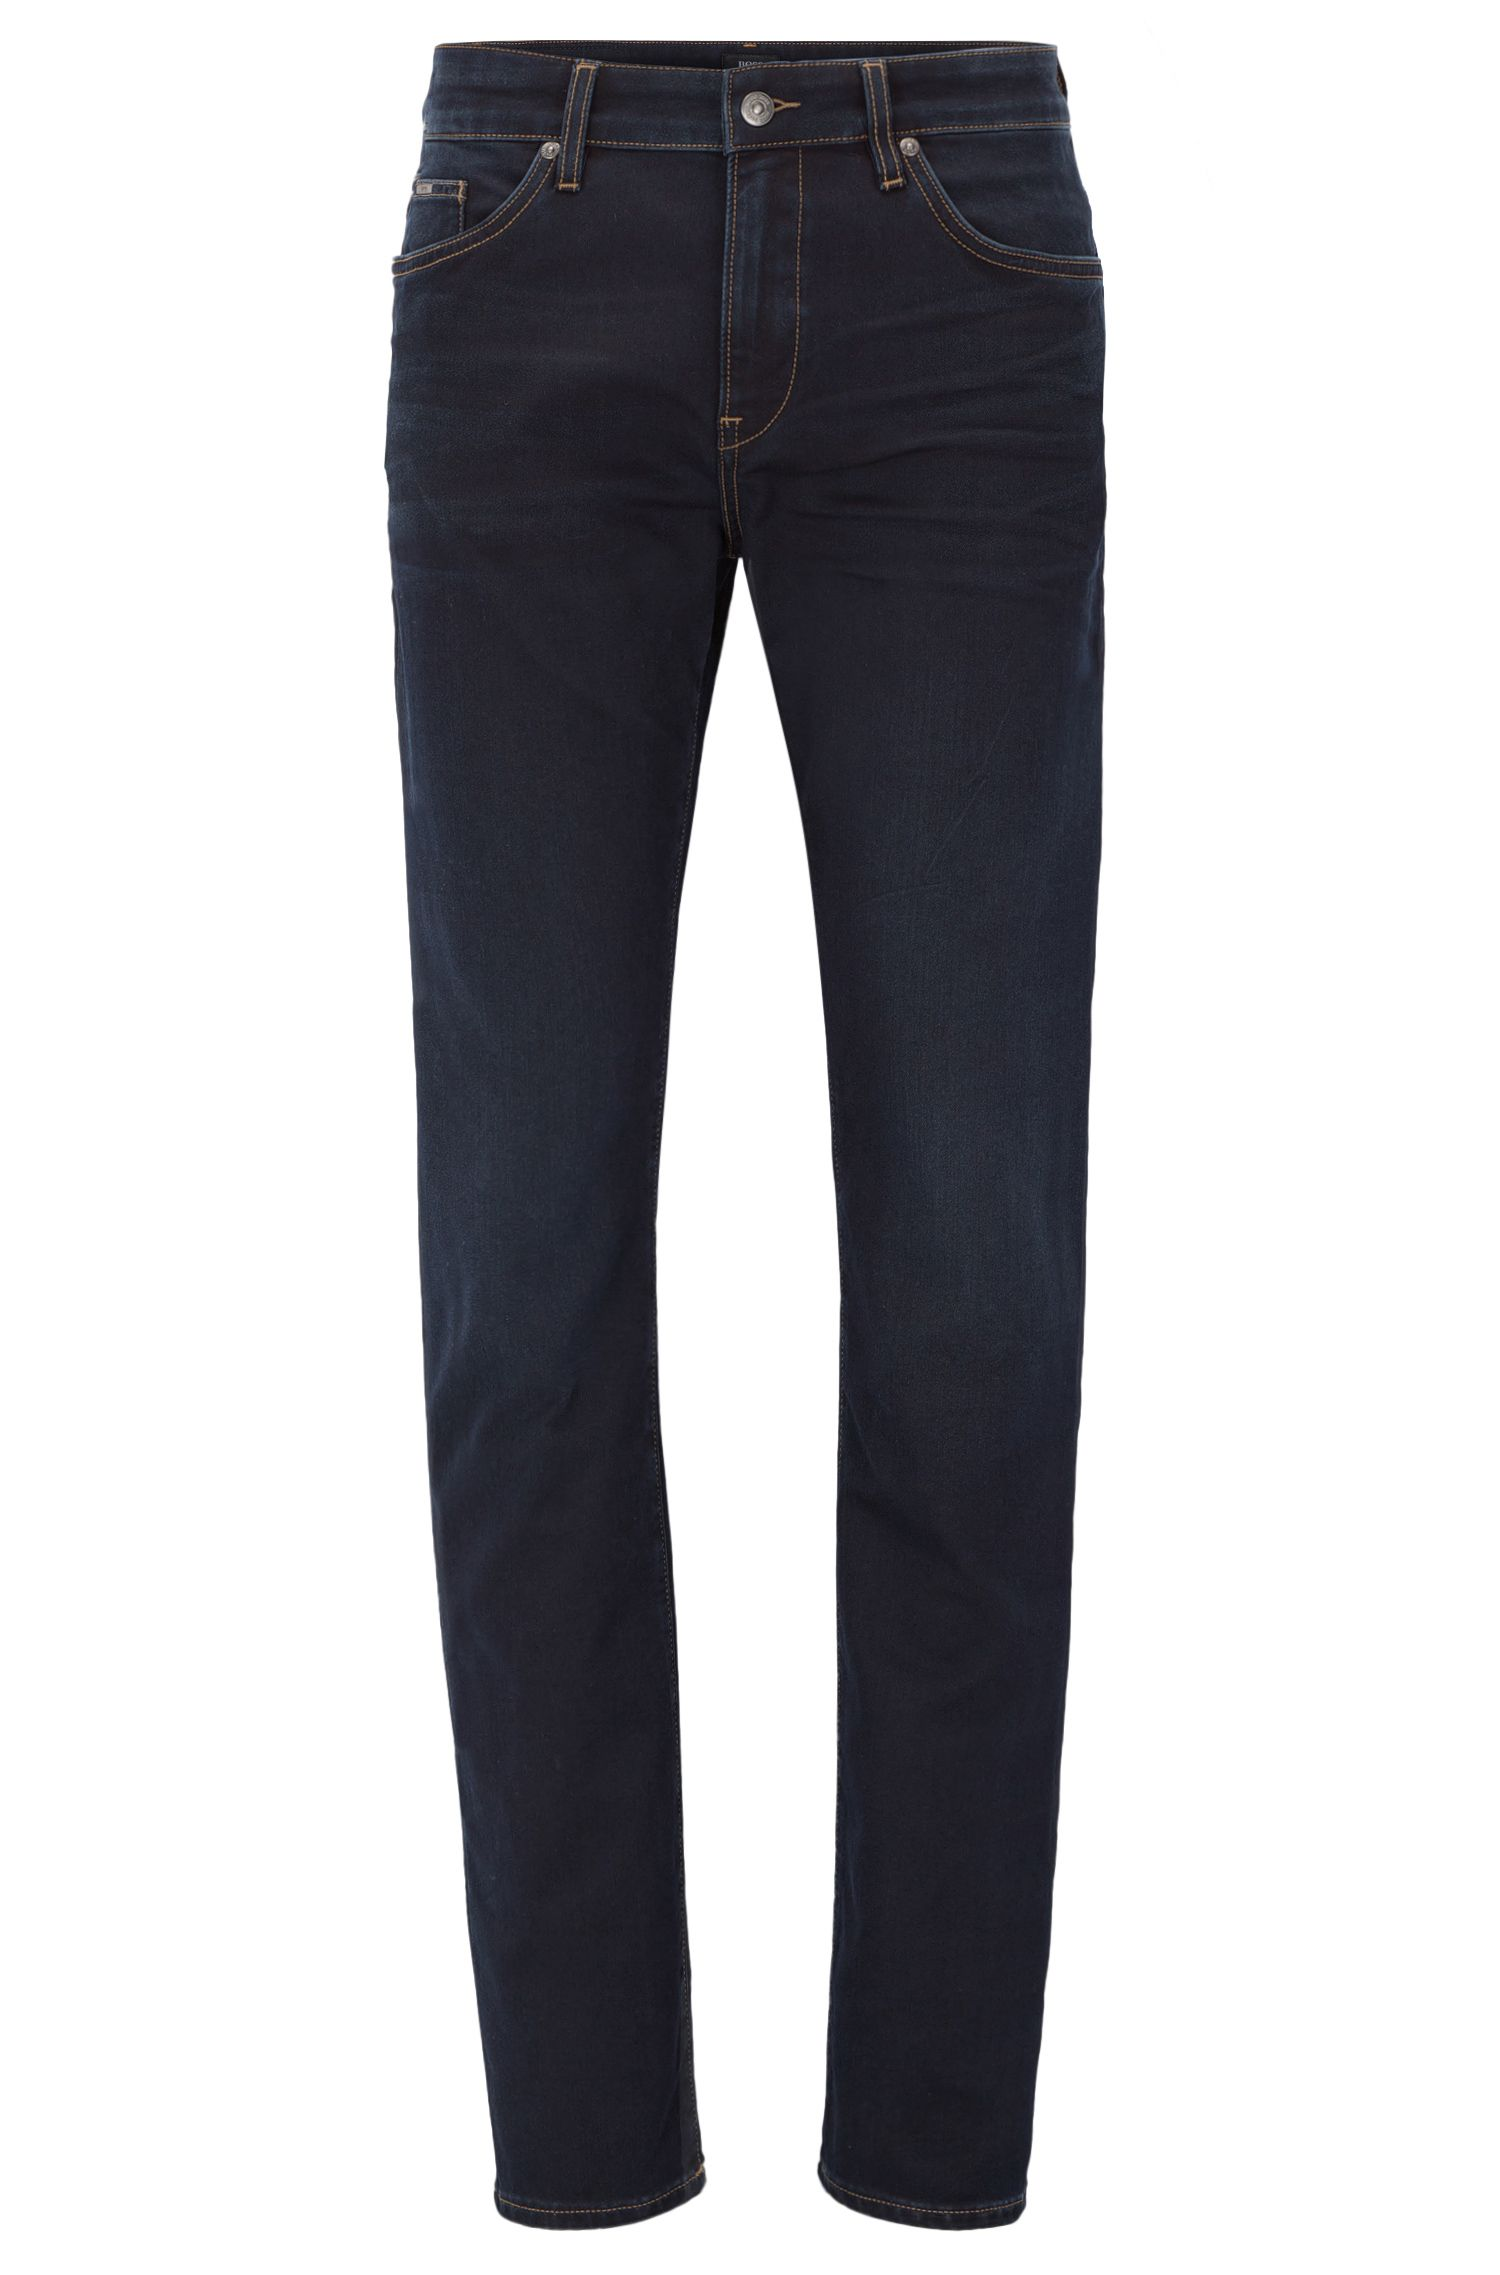 8 oz Italian Stretch Cotton Jeans, Slim Fit | Delaware